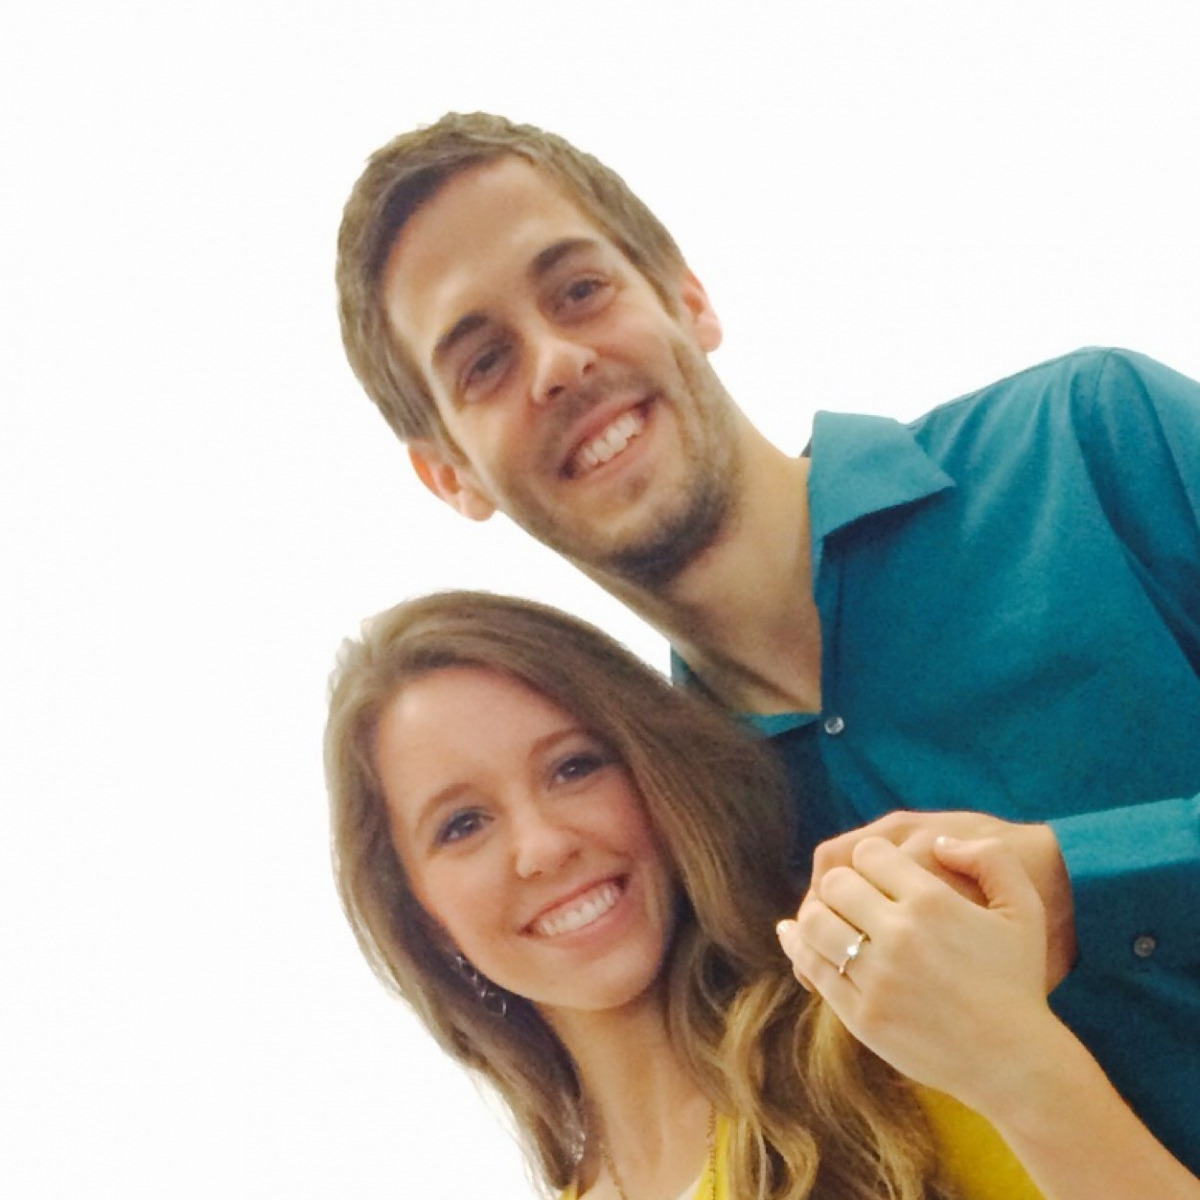 19 Kids And Counting S Jill Duggar And Derick Dillard: Jill Duggar: 19 Kids And Counting Star Thrilled To Enter